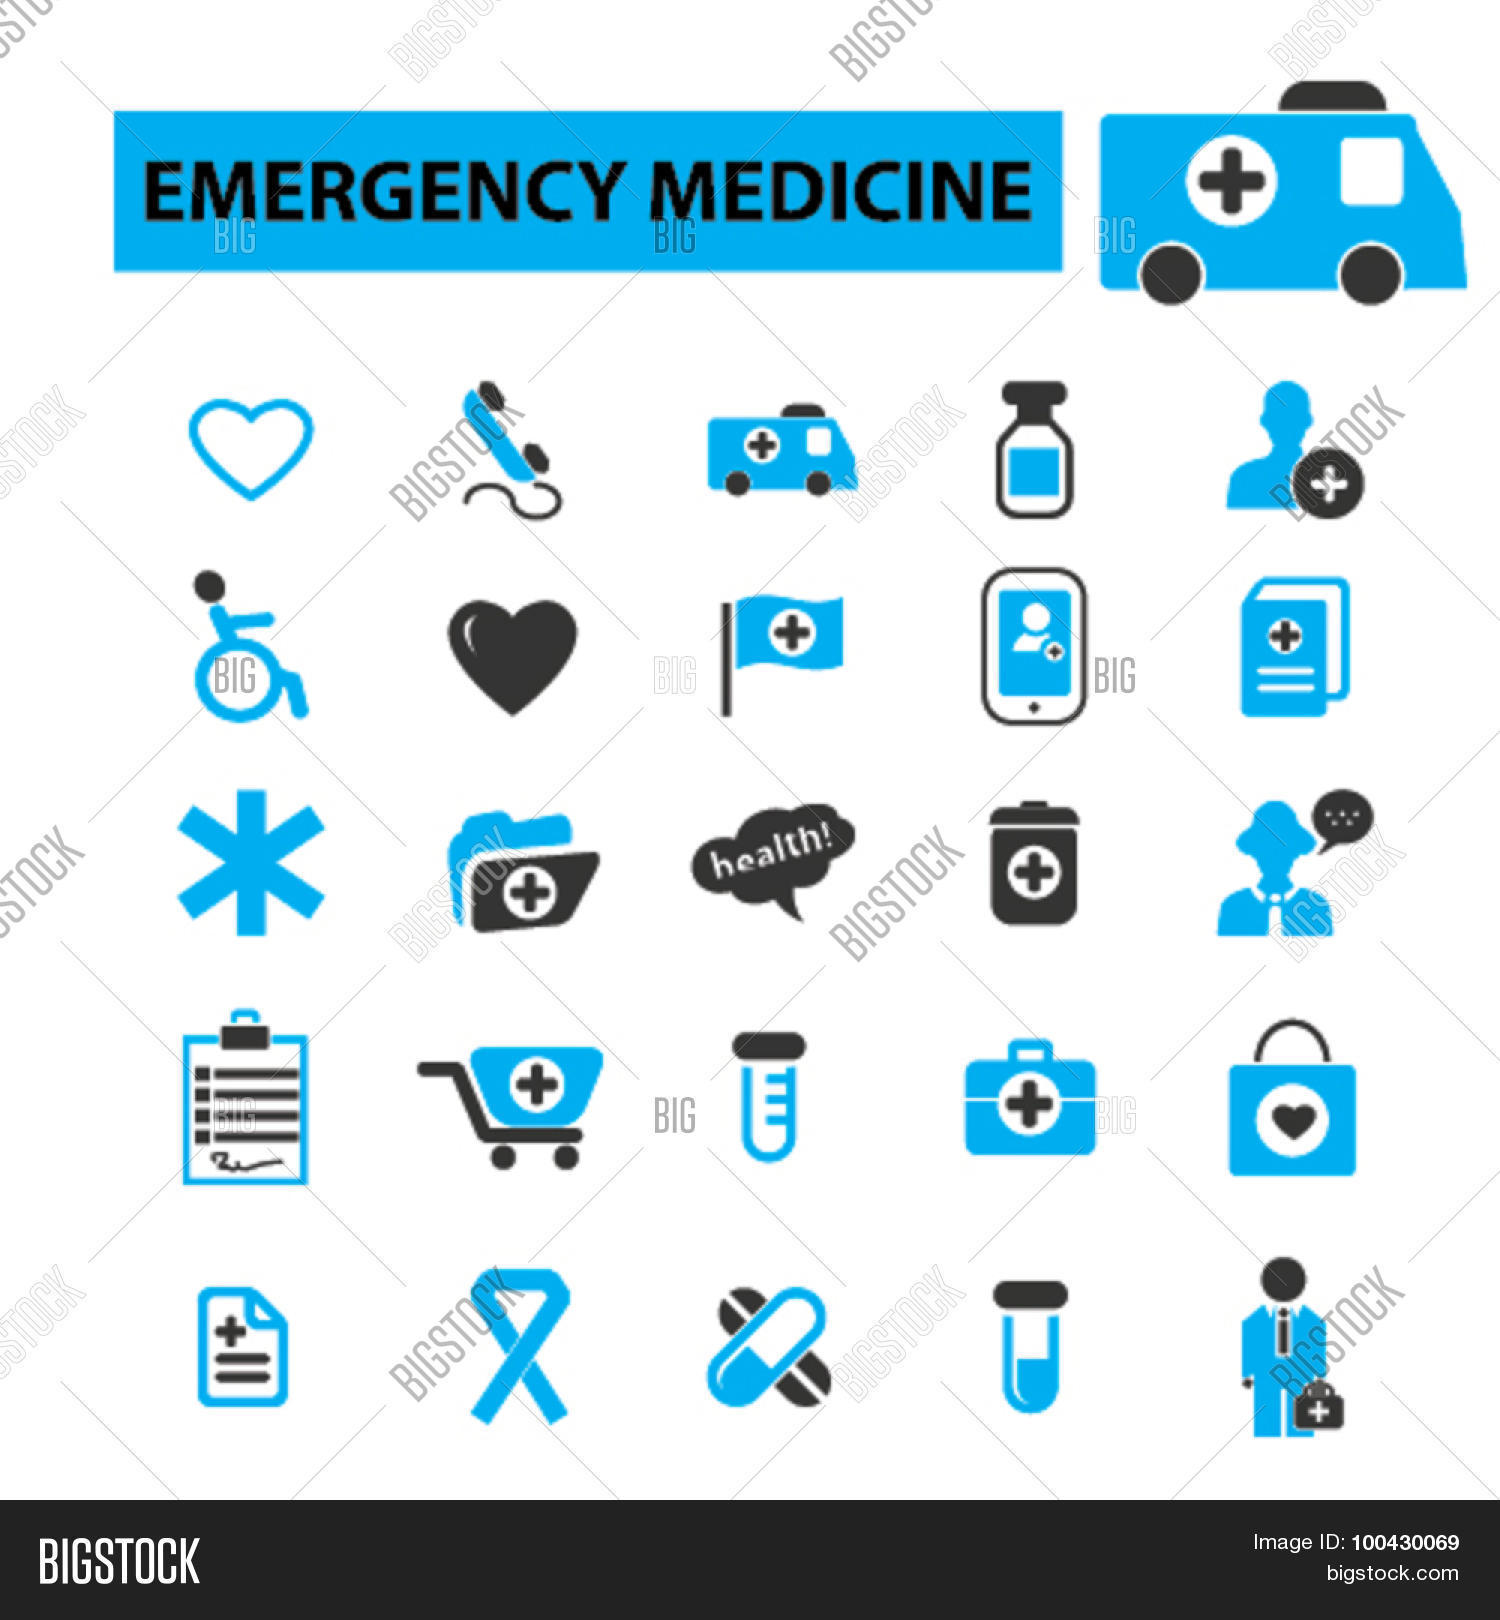 Emergency medicine icons concept. Medical icons, health ...